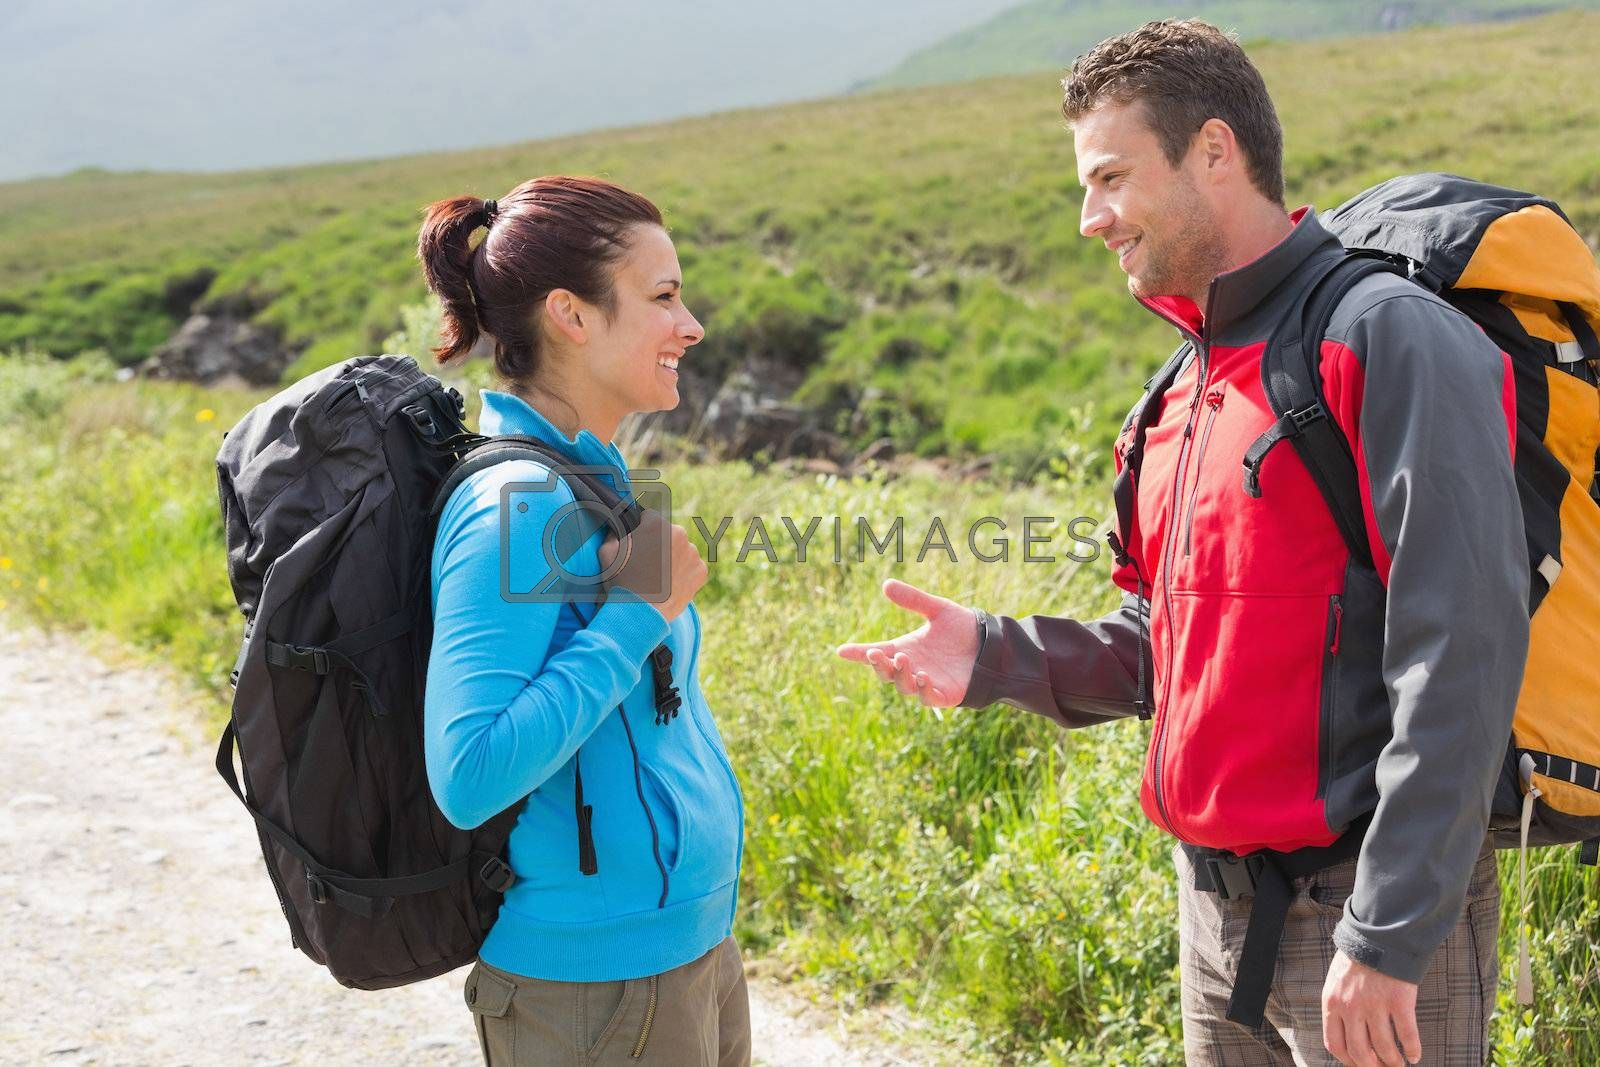 Hikers with backpacks chatting together by Wavebreakmedia